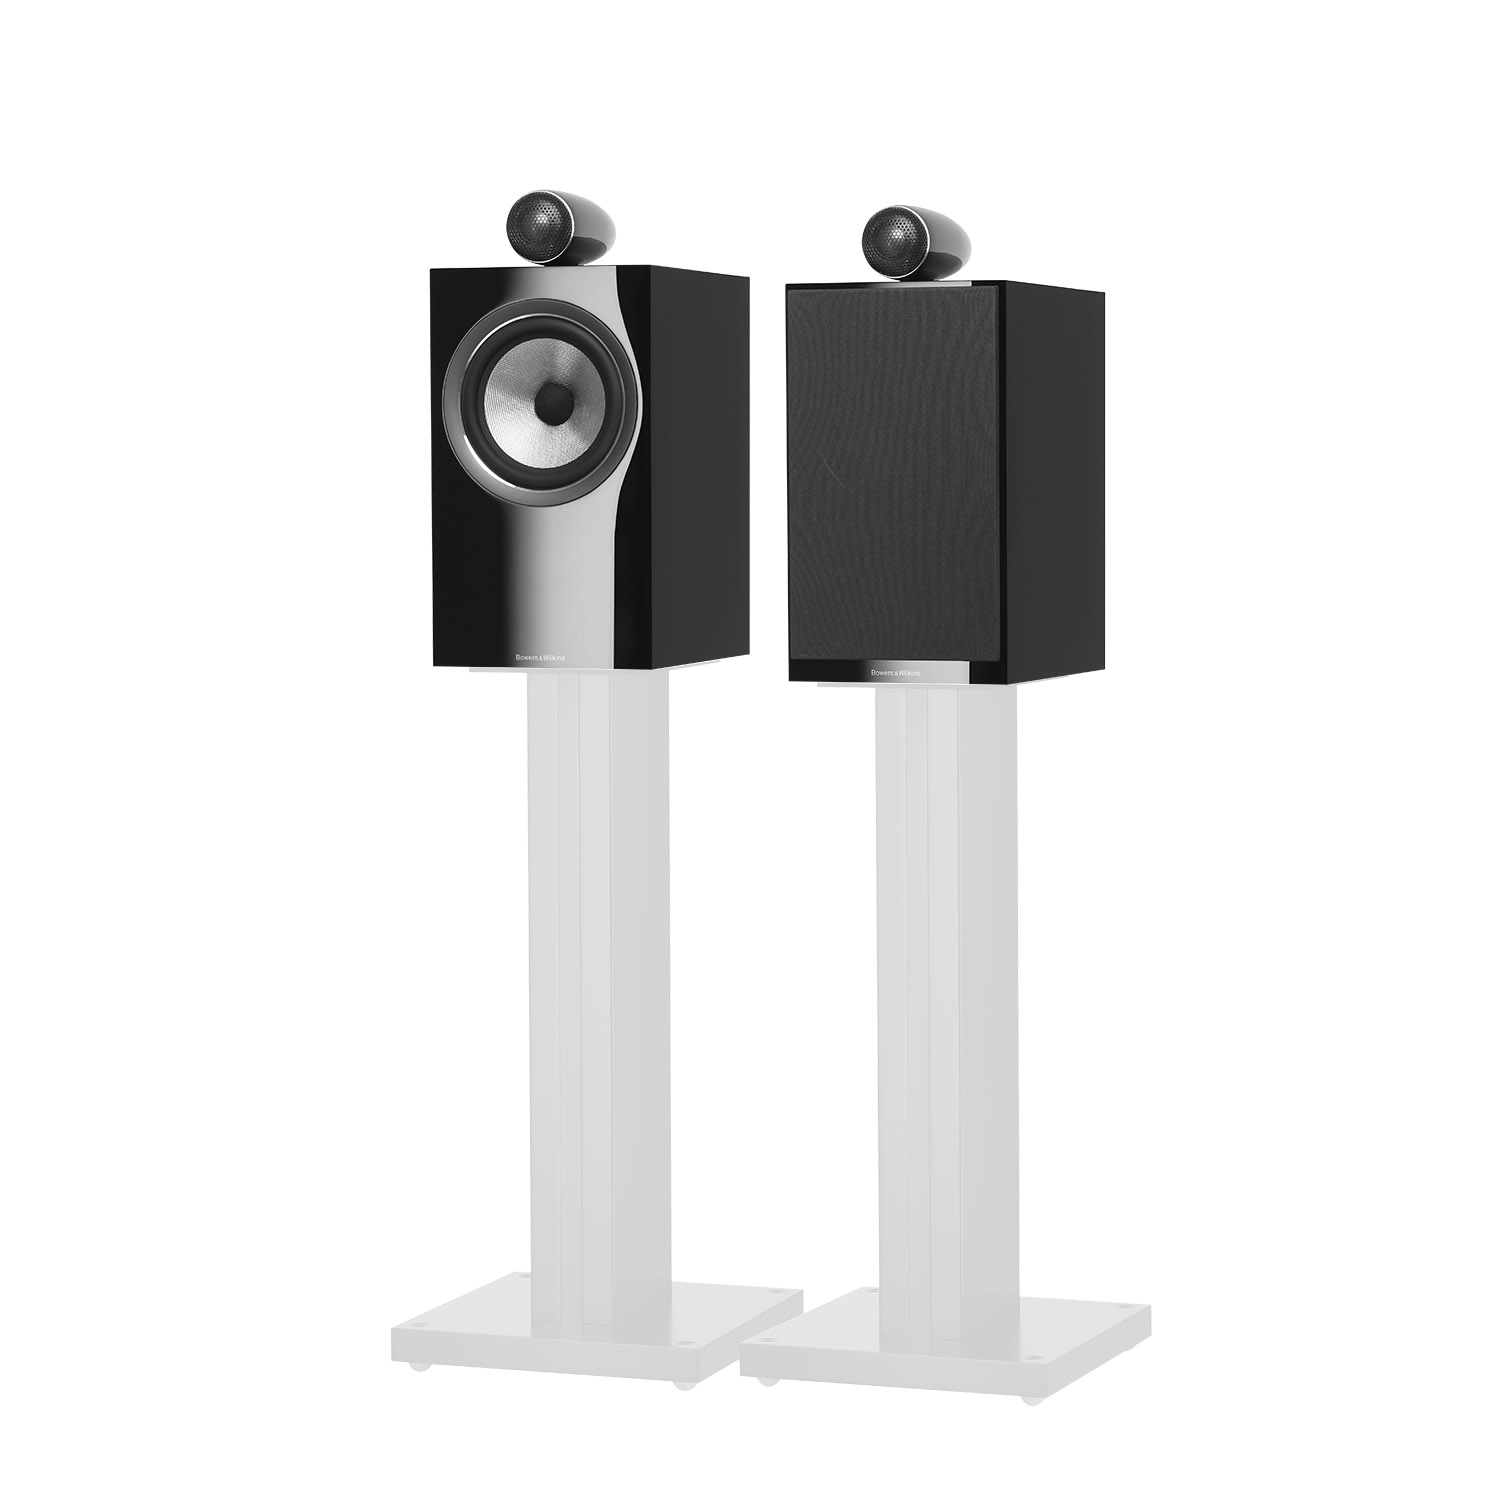 Bowers & Wilkins B&W 705 S2 luidspreker set